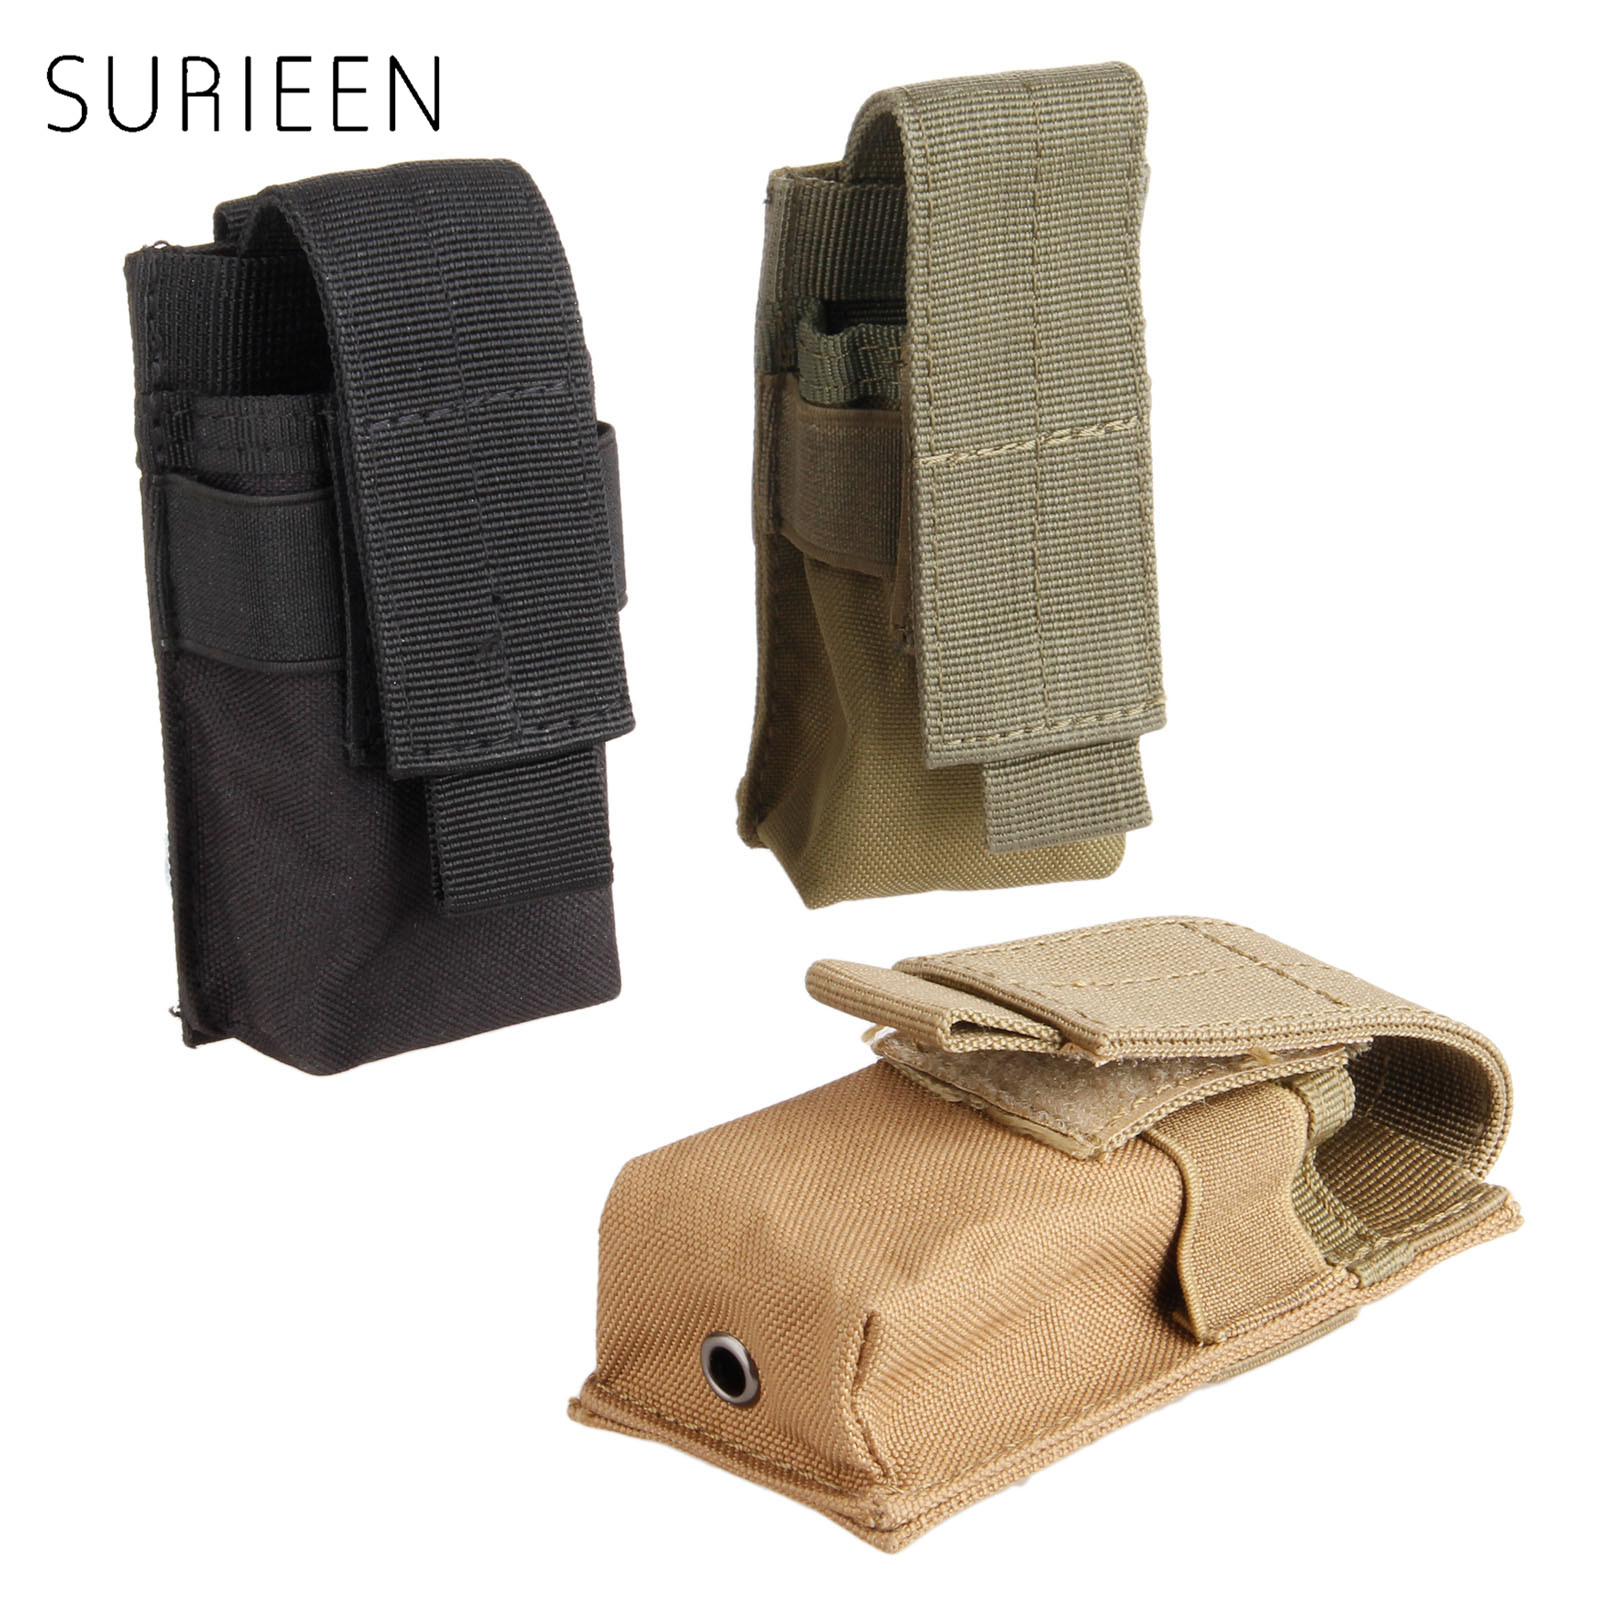 SURIEEN Mini Nylon Bag Tactical M5 Flashlight Bag MOLLE Clip Single Magazine Pouch Pistol Gun Holster for Hunting Vest Rucksack tactical military gun pistol holster magazine case for 1911 black